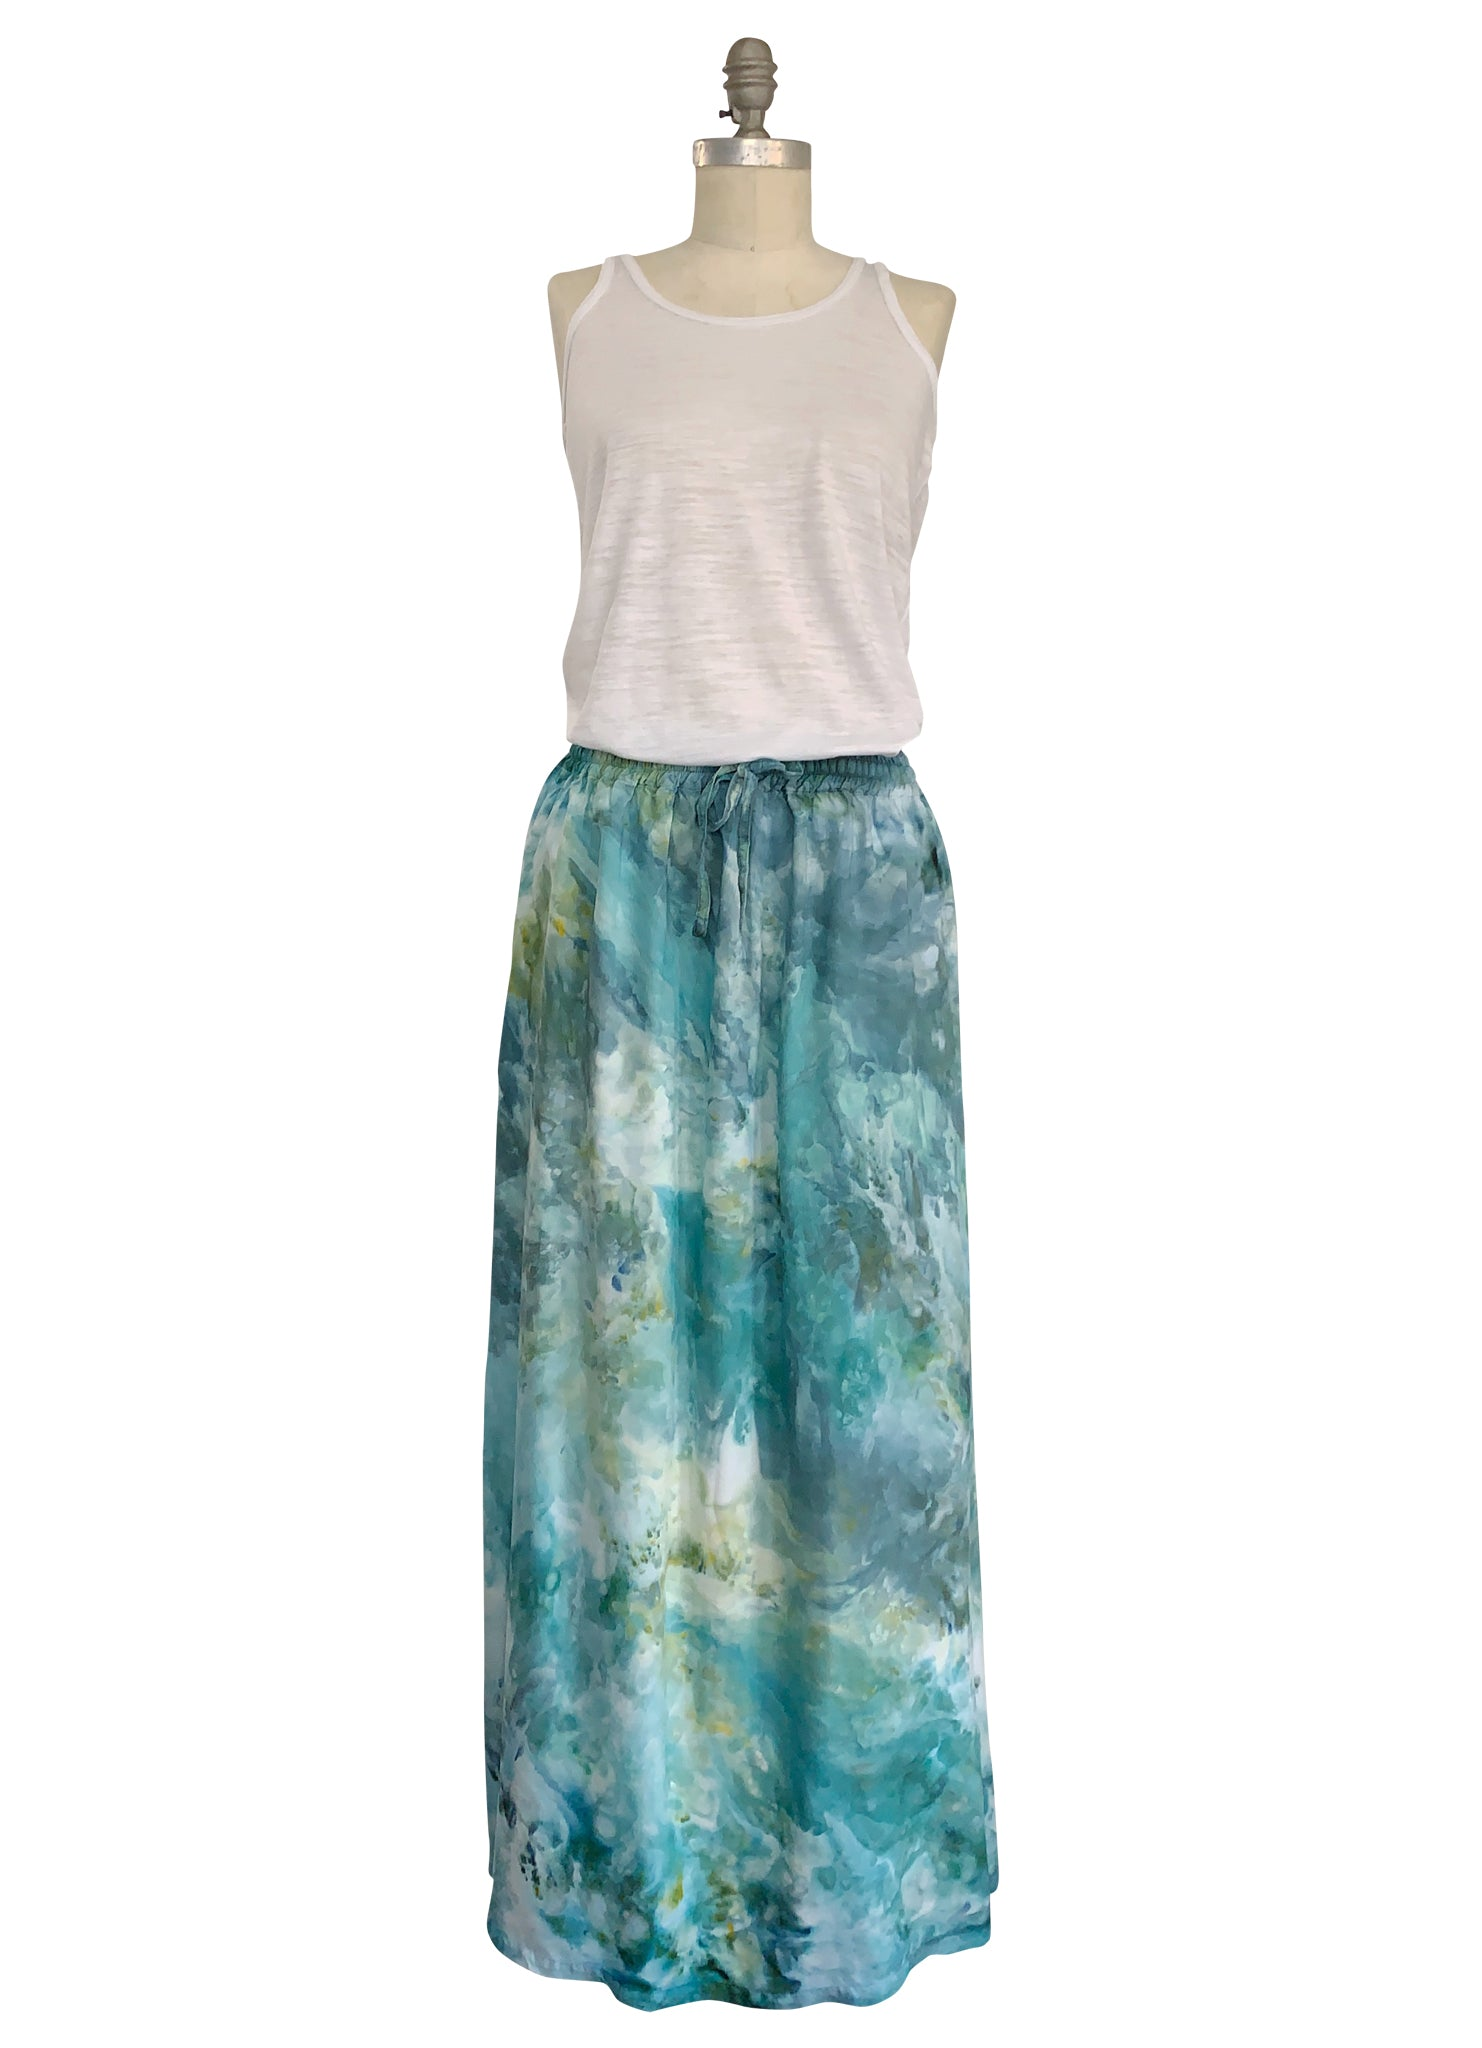 Maxi Skirt with Pockets in Sea Glass -  - Dyetology